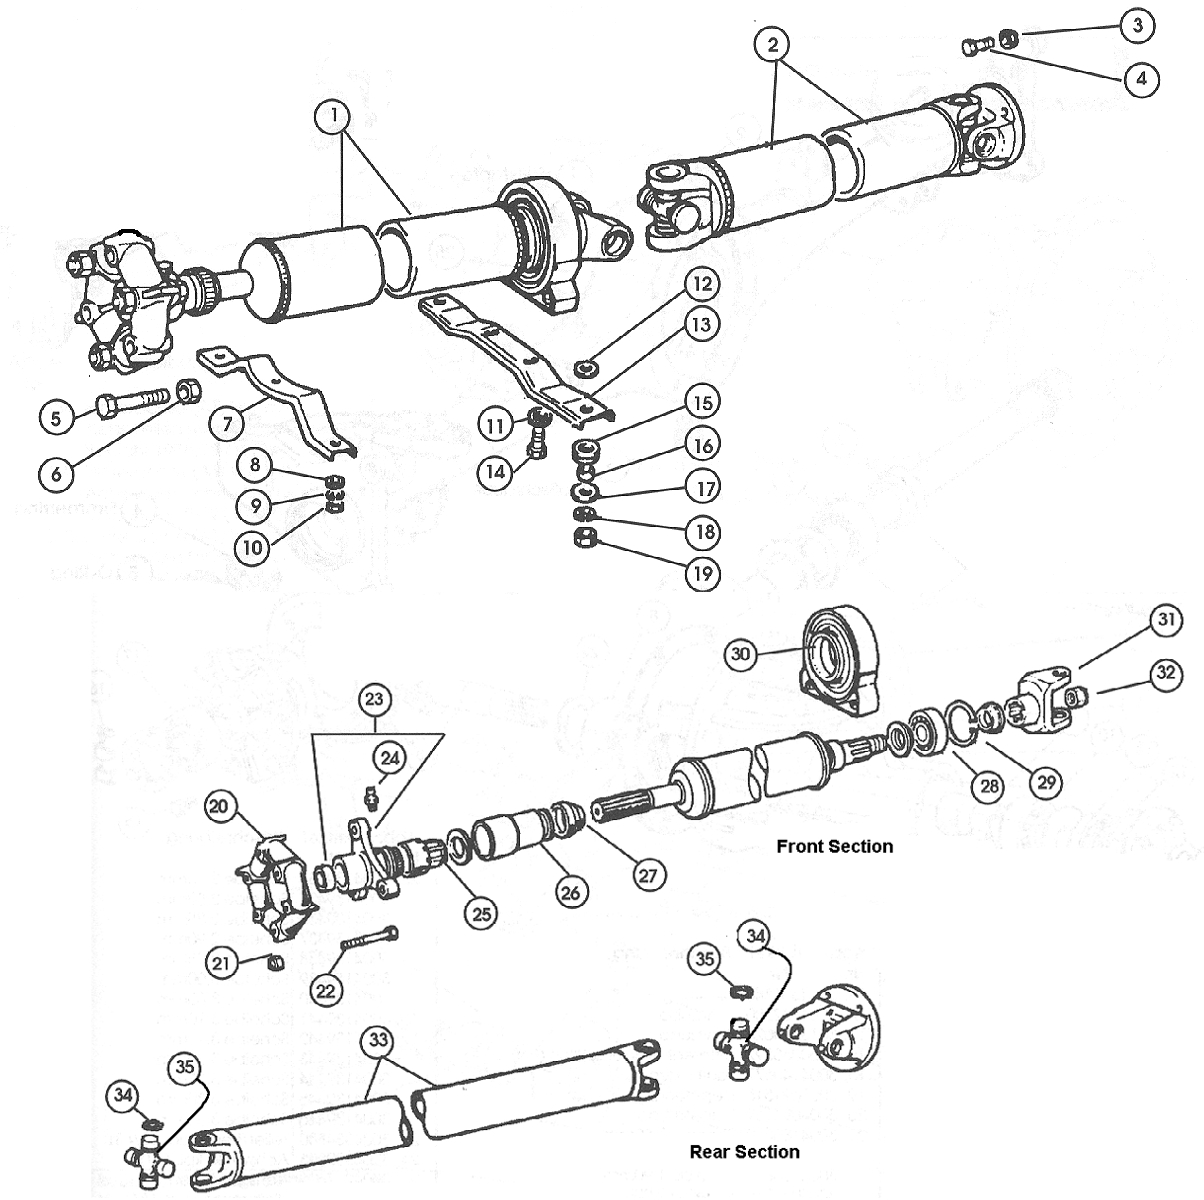 Fiat 500 Fuse Box Diagram Likewise Abarth Ss On 124 Parts Tractor Engine And Wiring